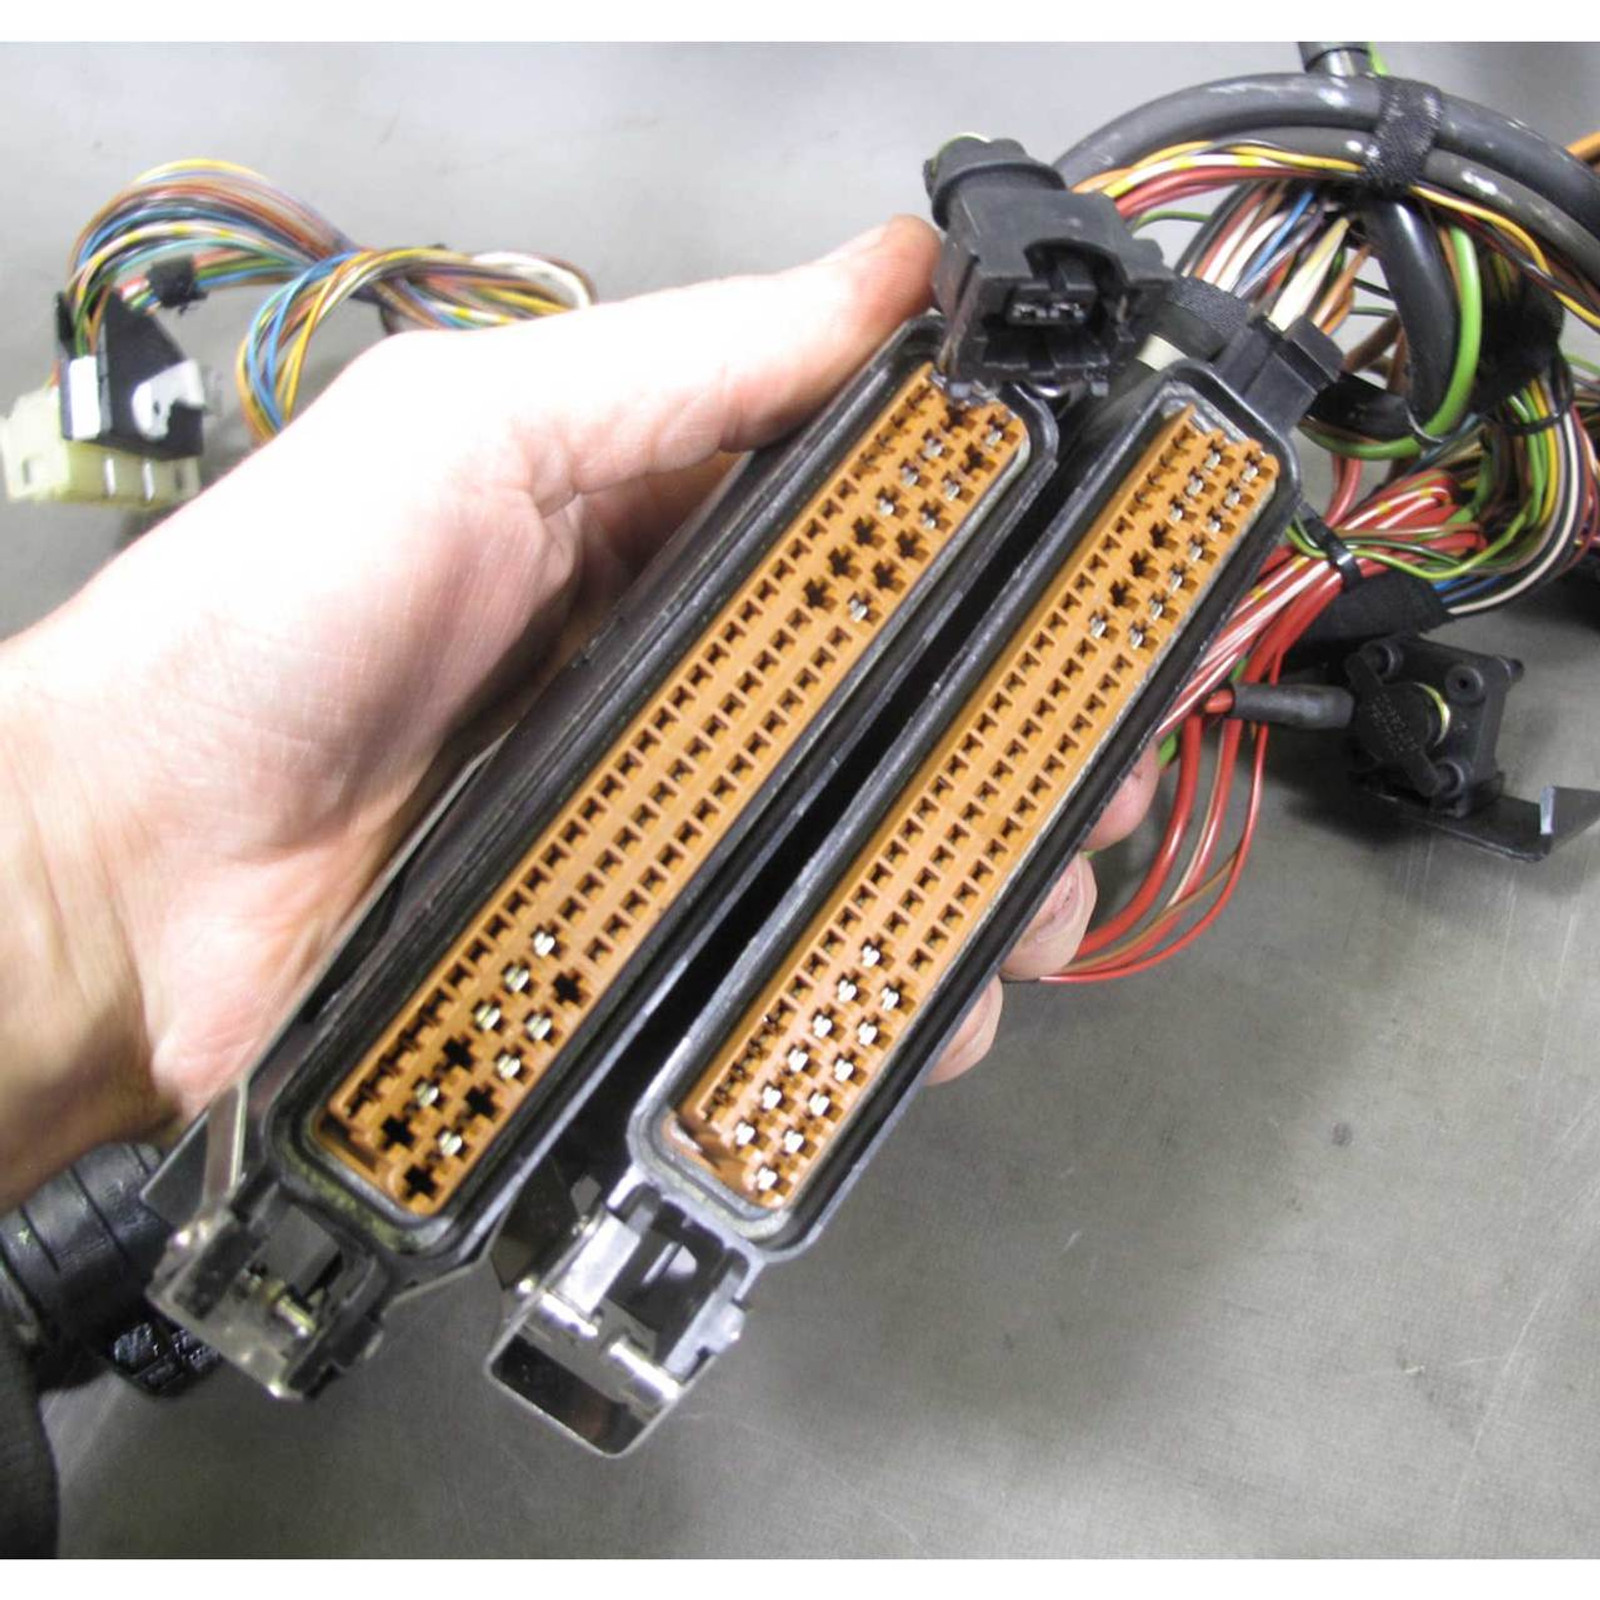 1997 Bmw 528i Wiring Harness Electrical Diagrams 740il Engine E39 M52 6 Cylinder For Auto Forum